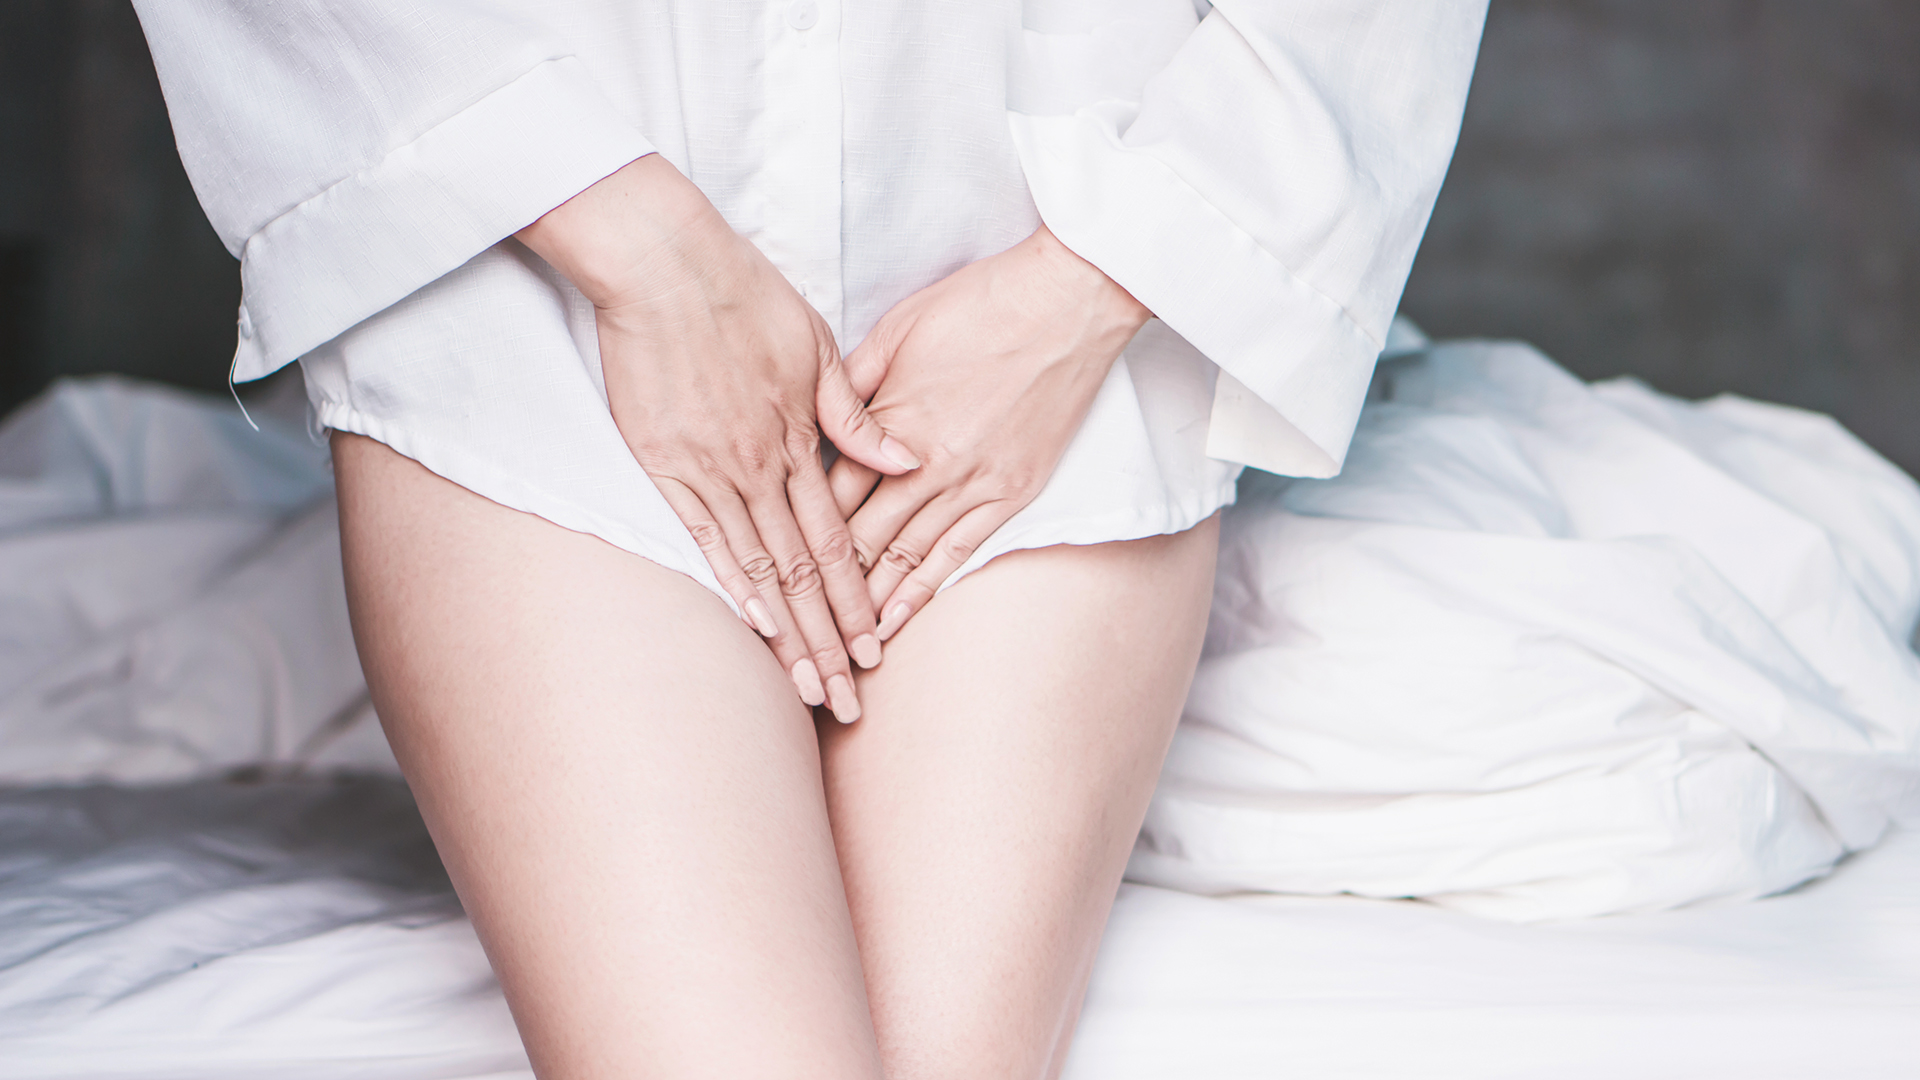 7 things gynaecologists say you should stop doing during your period